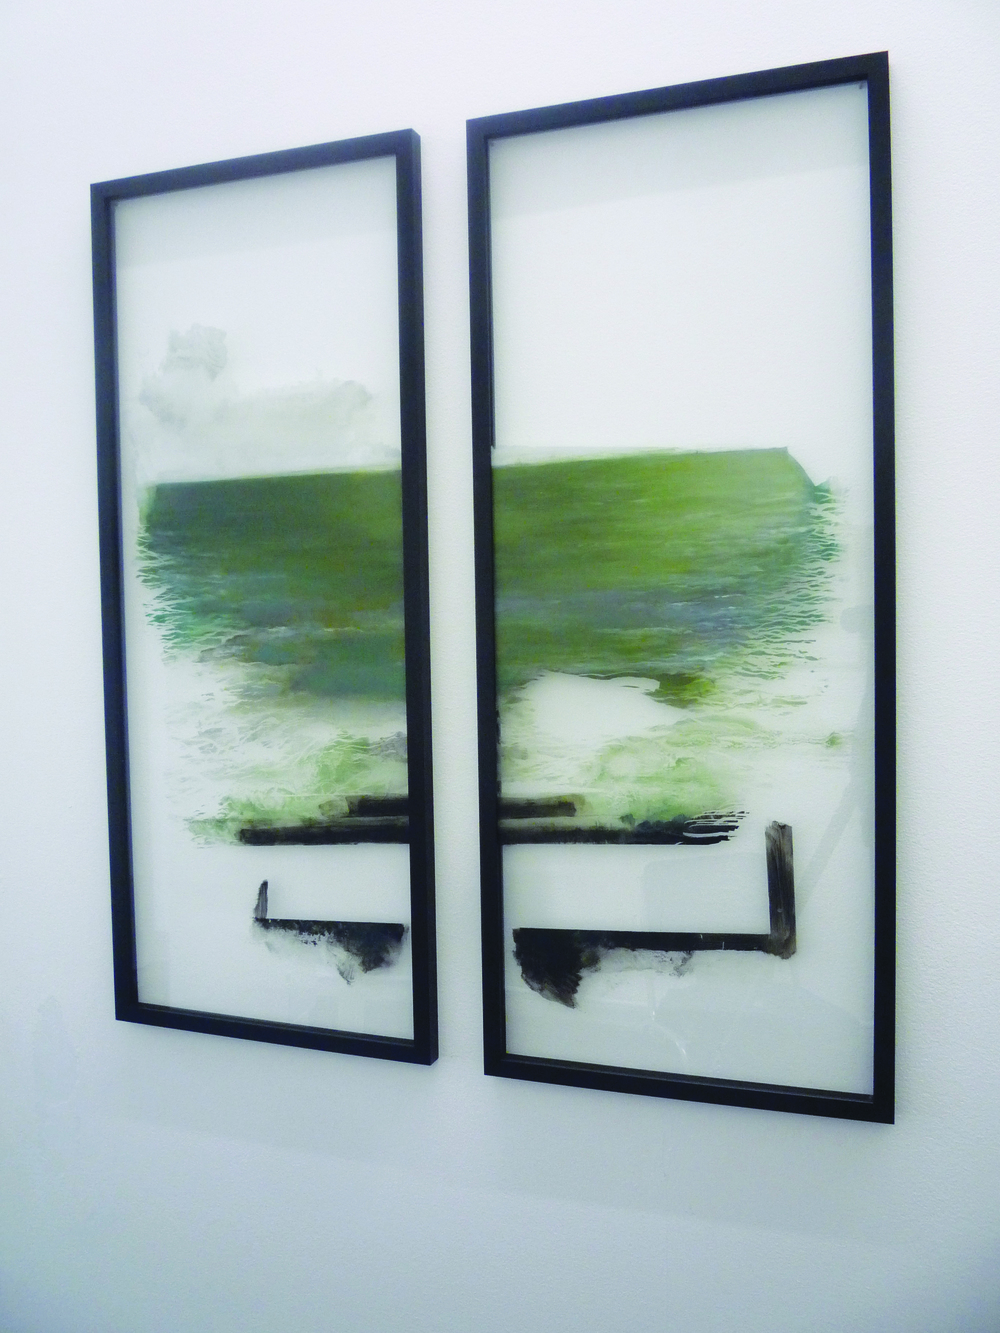 o.T. (Diptychon), 2012, Oil paint on glass, each 100 x 40